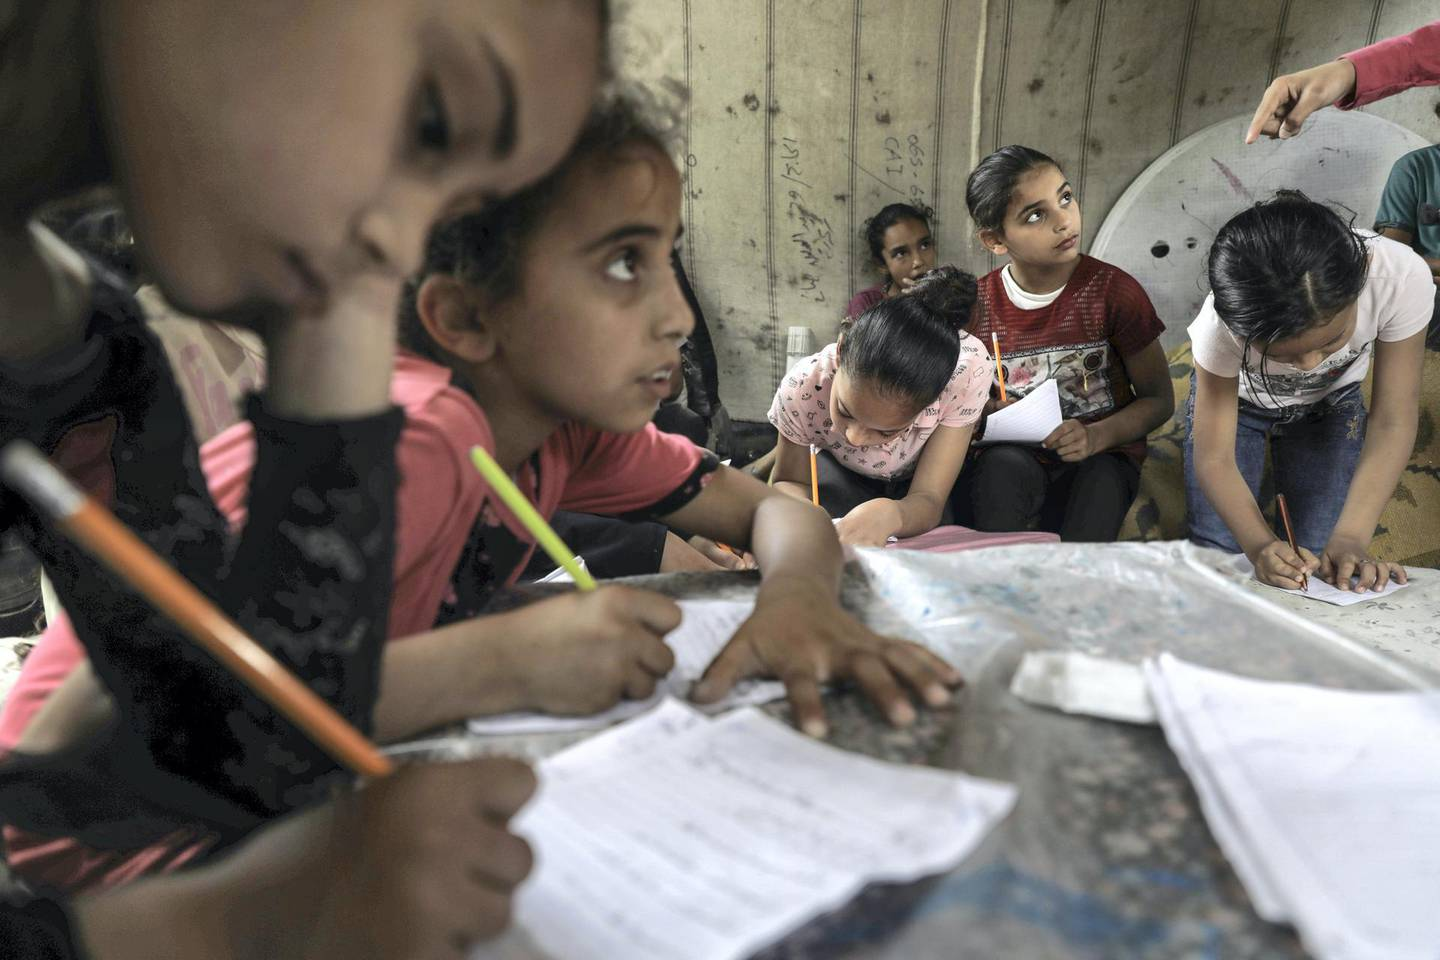 Children attend an Arabic language lesson given by a Palestinian school girl Fajr Hmaid, 13, as schools are shut due to the coronavirus disease (COVID-19) restrictions, at Hmaid's family house  in Gaza City,June 4, 2020.  (Photo by Majdi Fathi/NurPhoto via Getty Images)